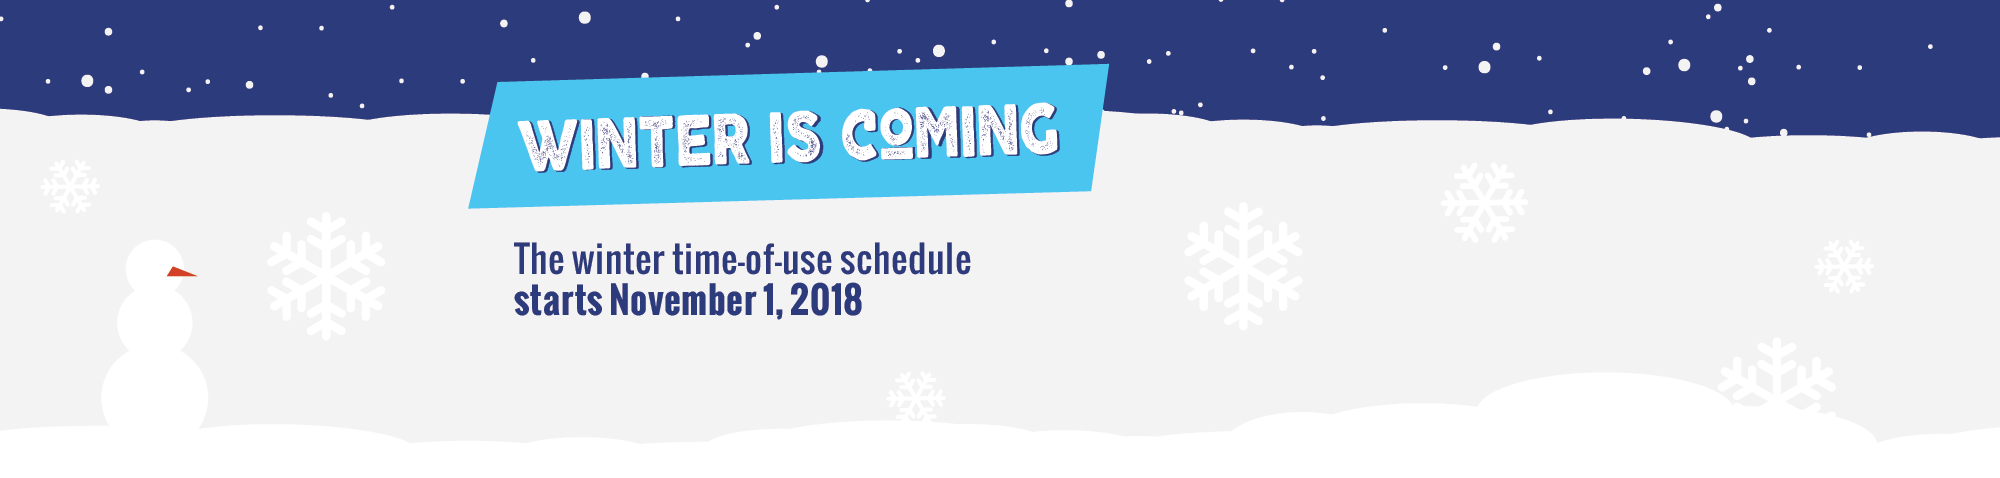 Winter time-of-use schedule starts